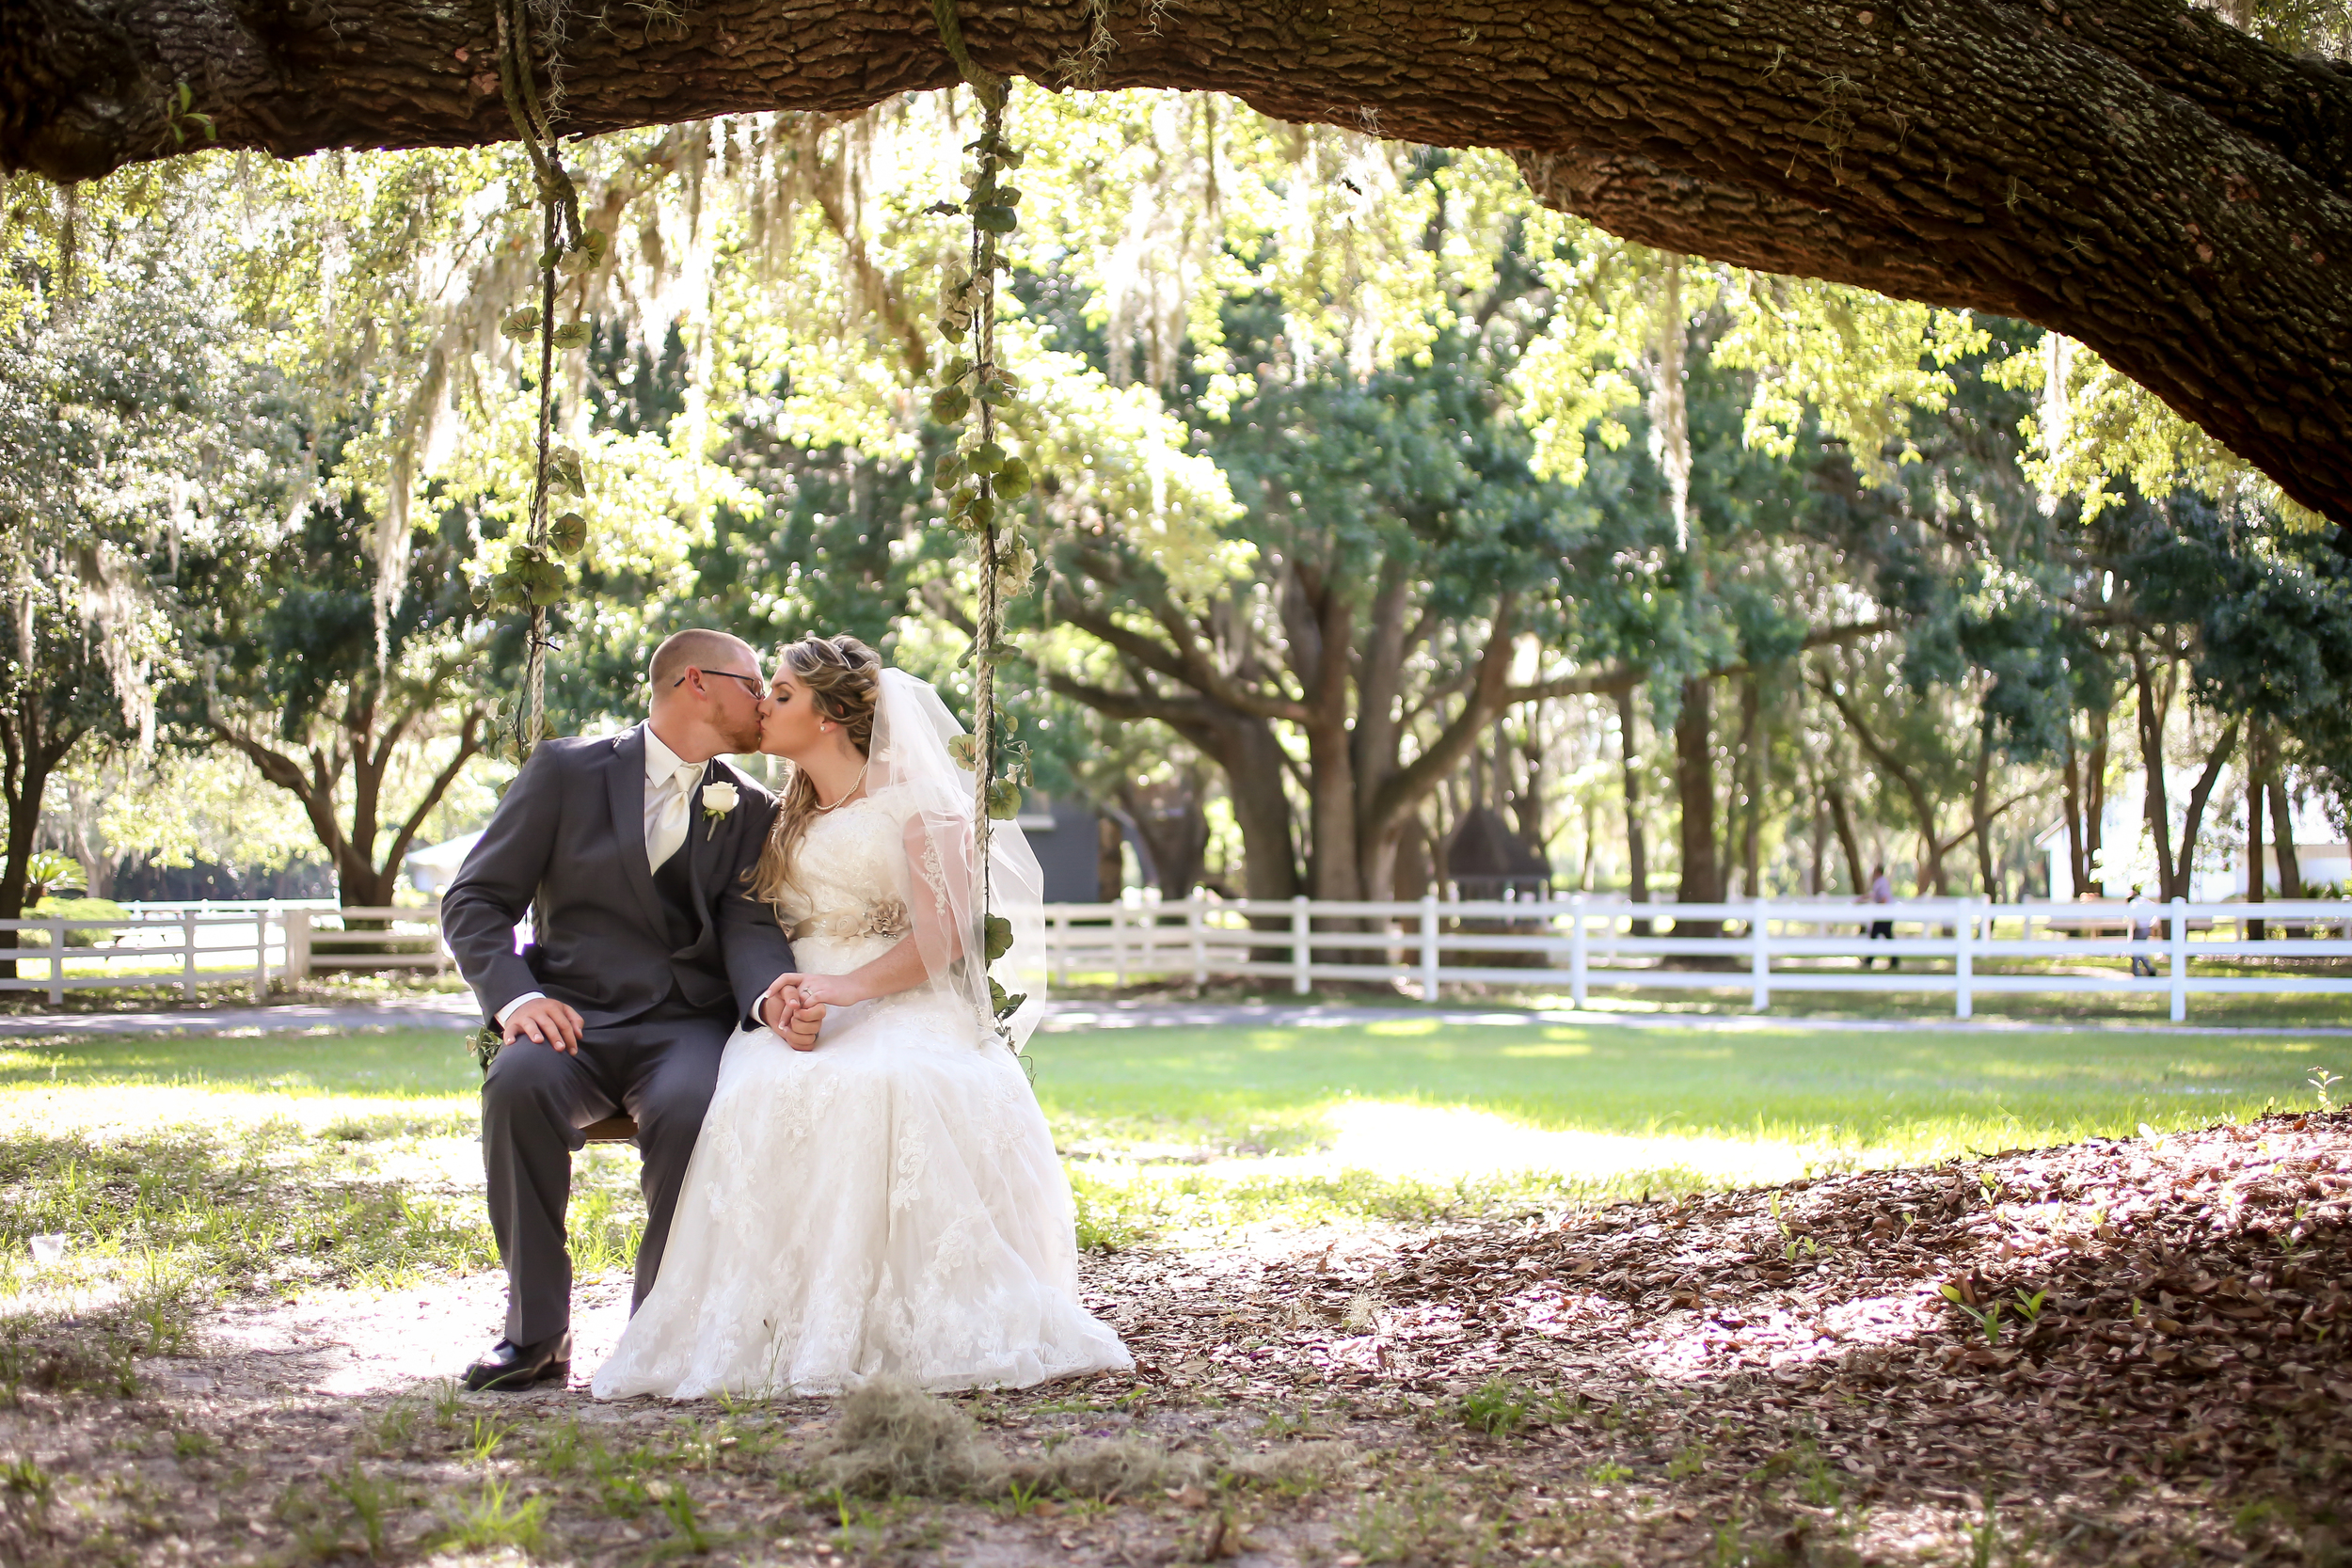 The couple shared a sweet moment alone on a shady tree swing beneath a towering Oak